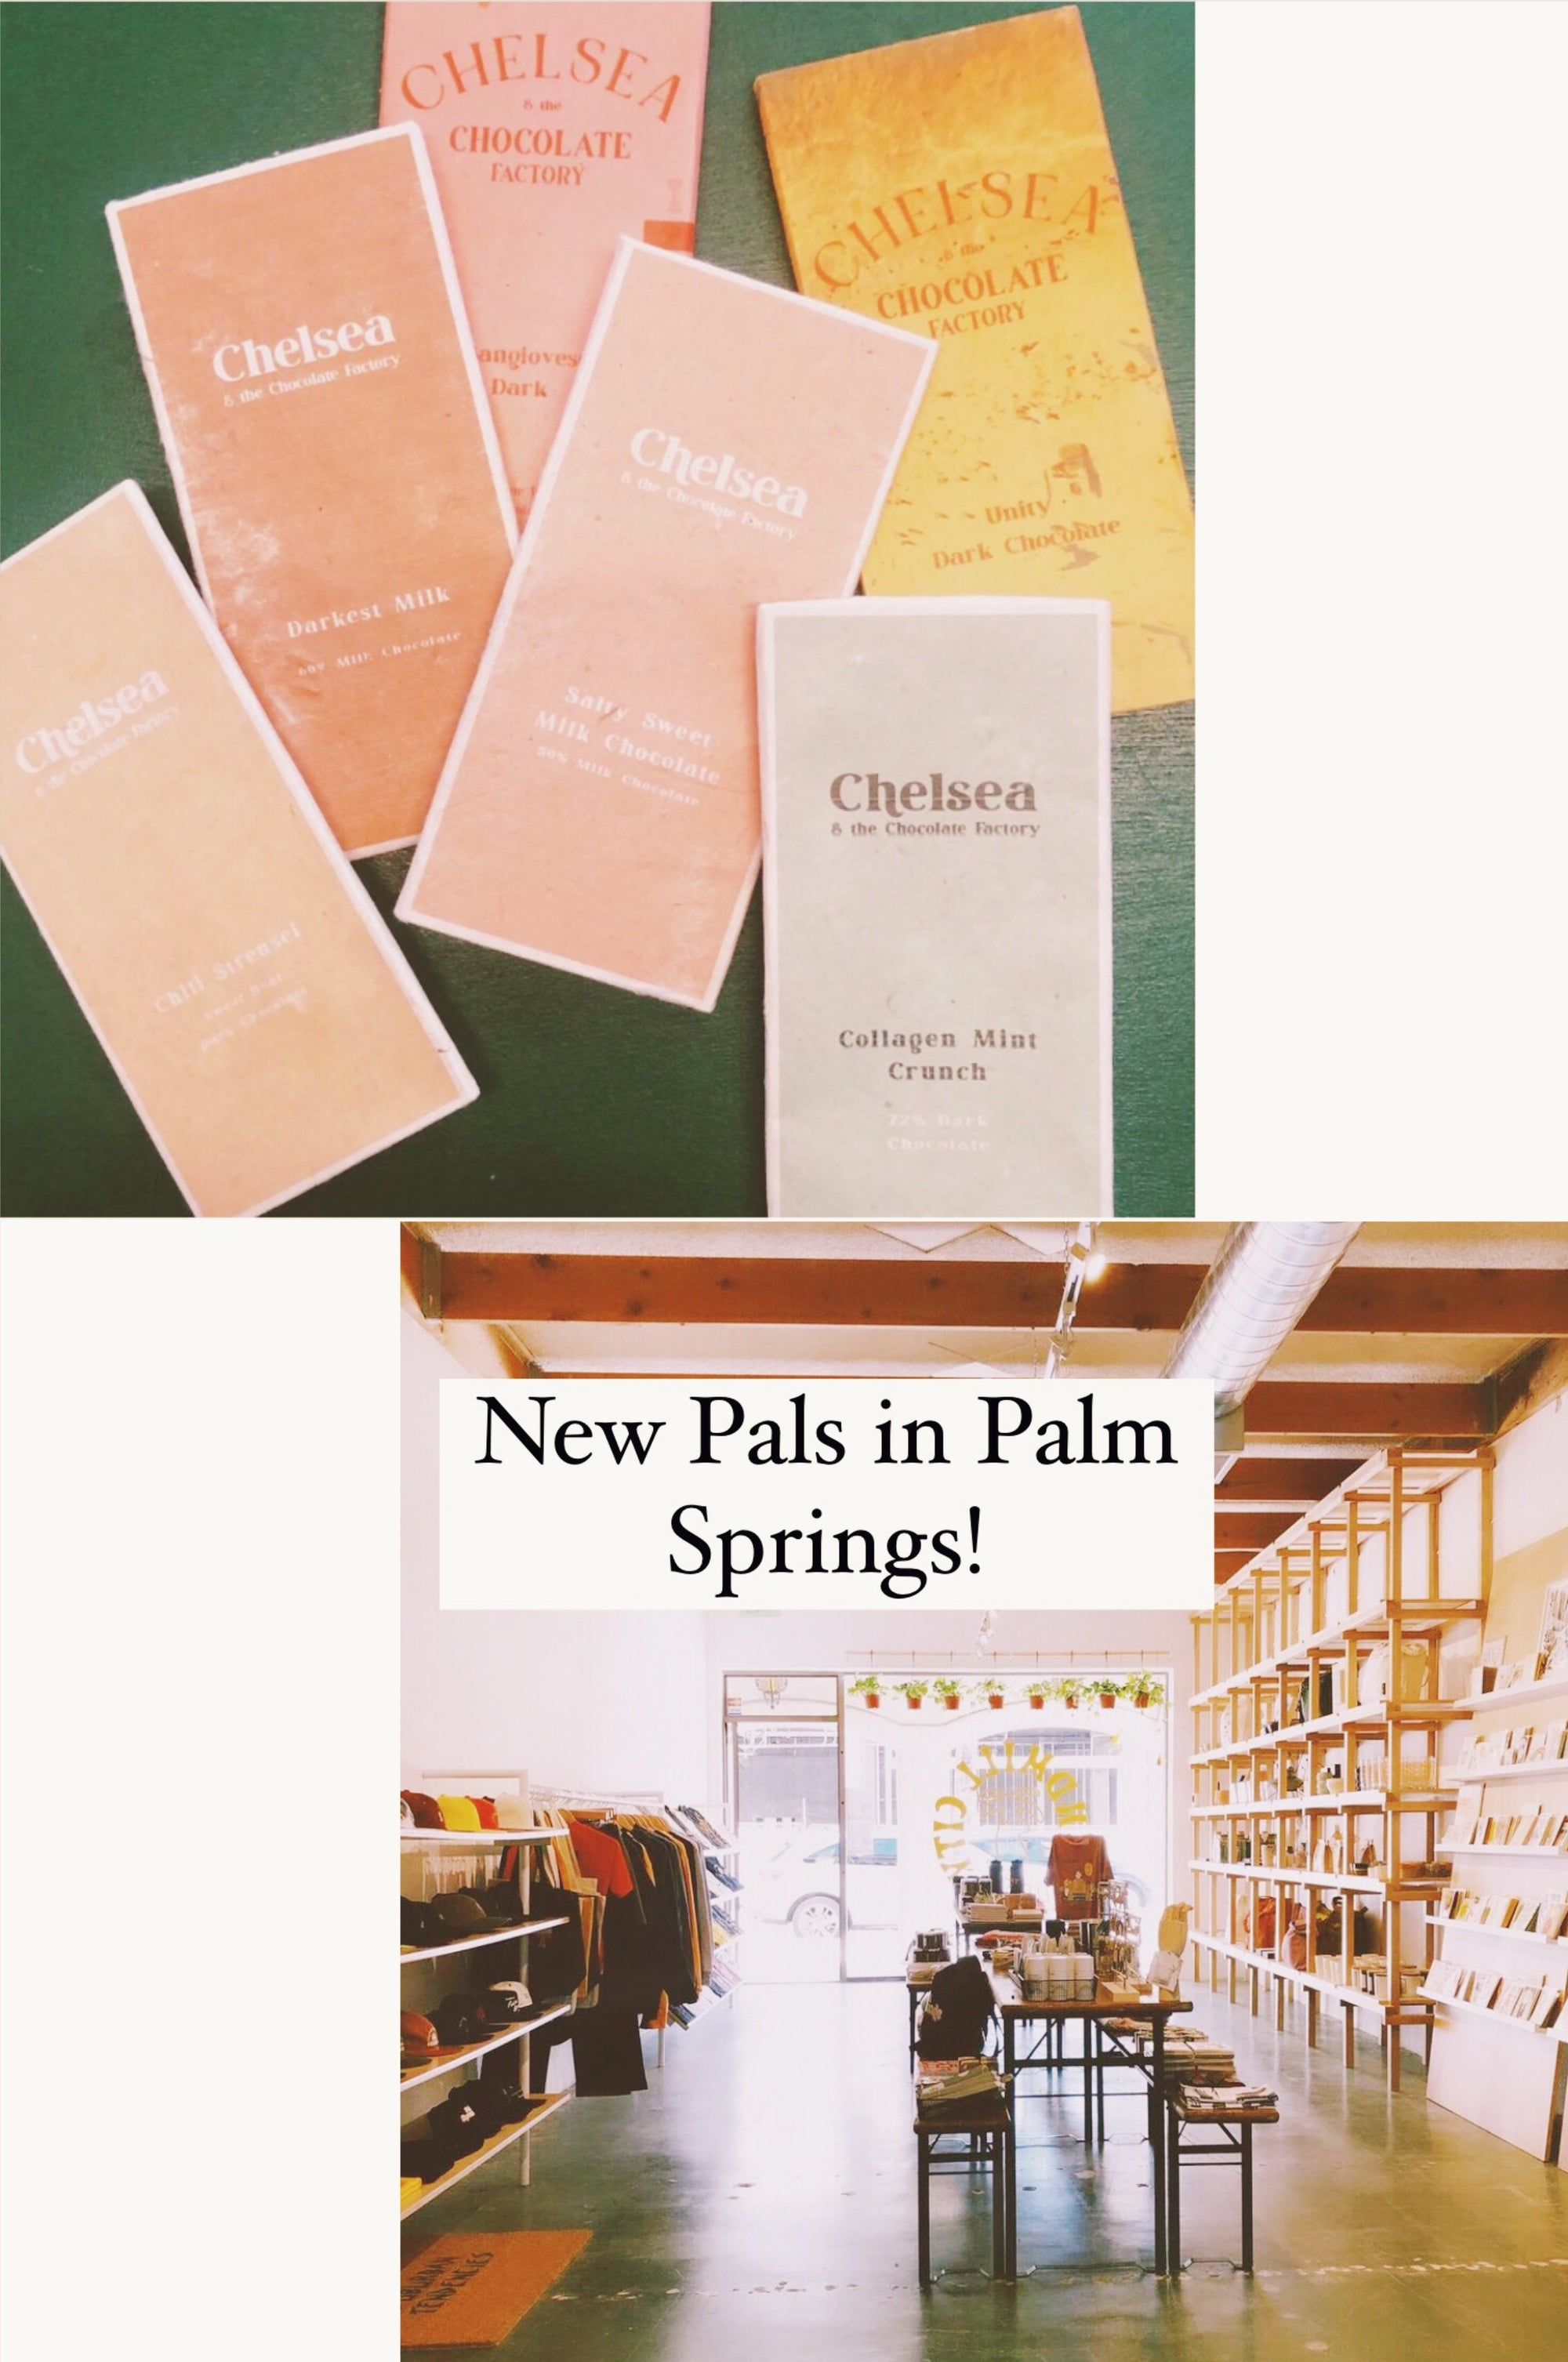 New Pals: Windmill City Super #1 in Palm Springs